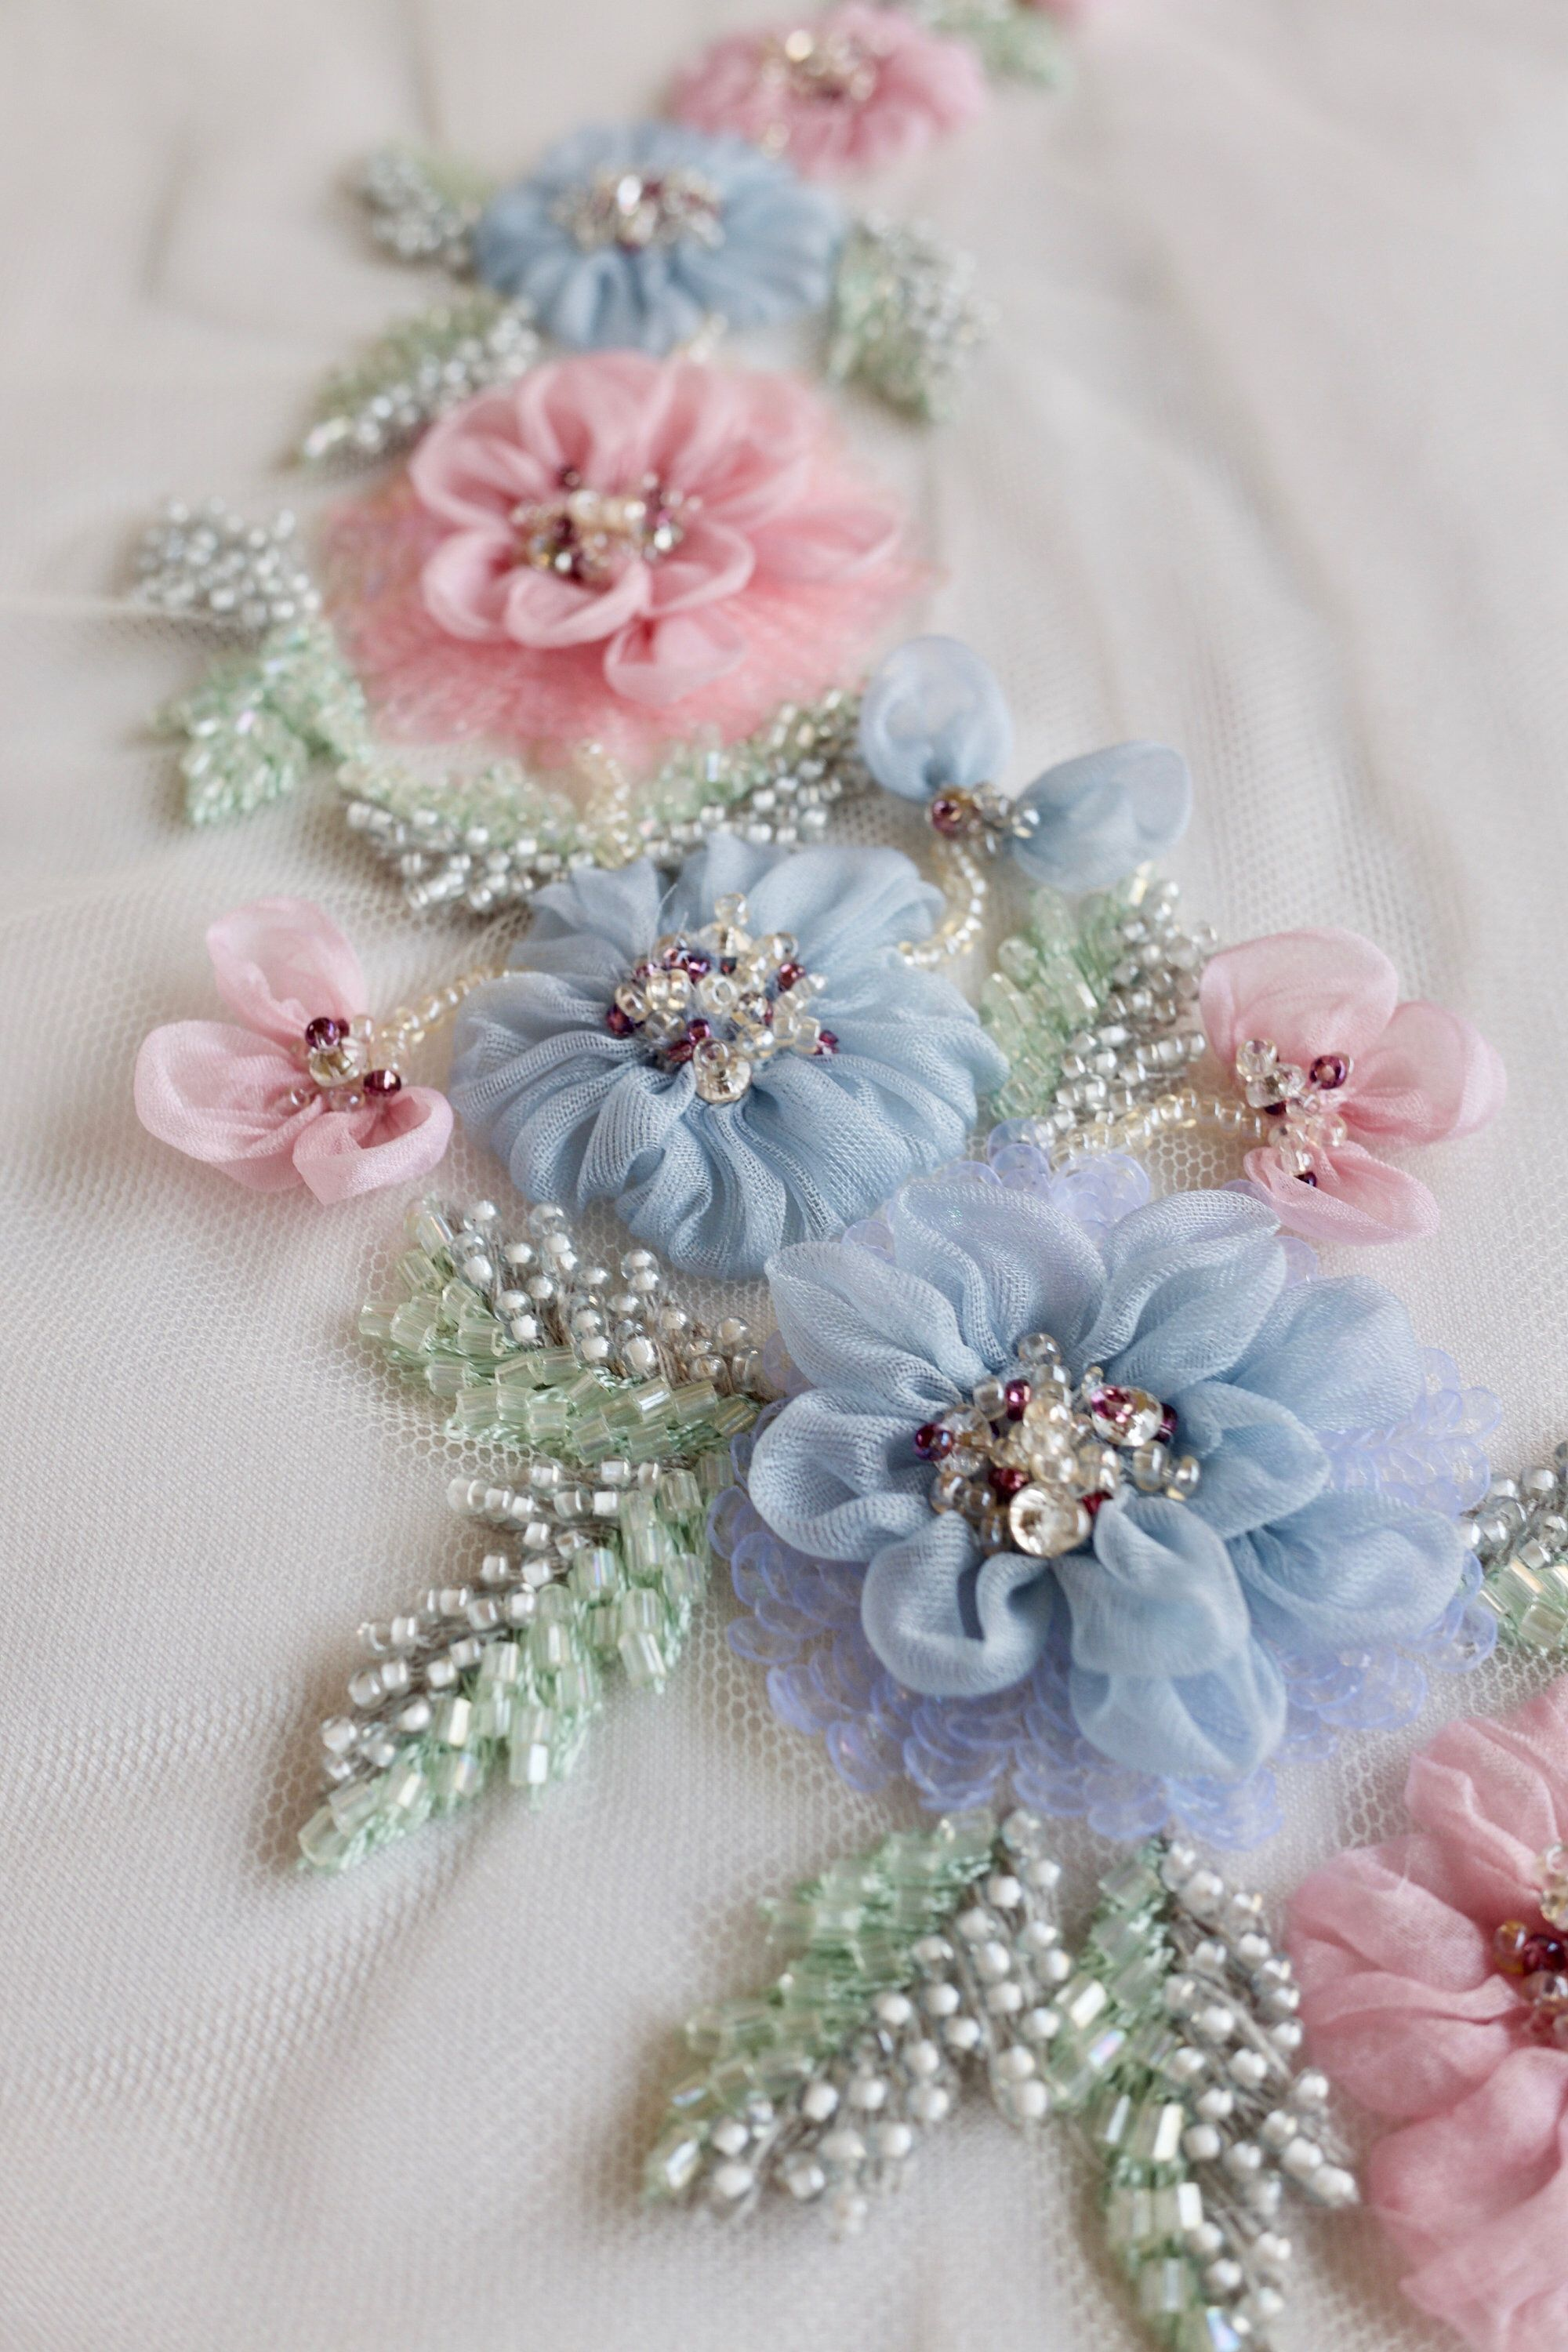 Hand Made Floral Applique In The Pastels Of Spring Silk Ribbon